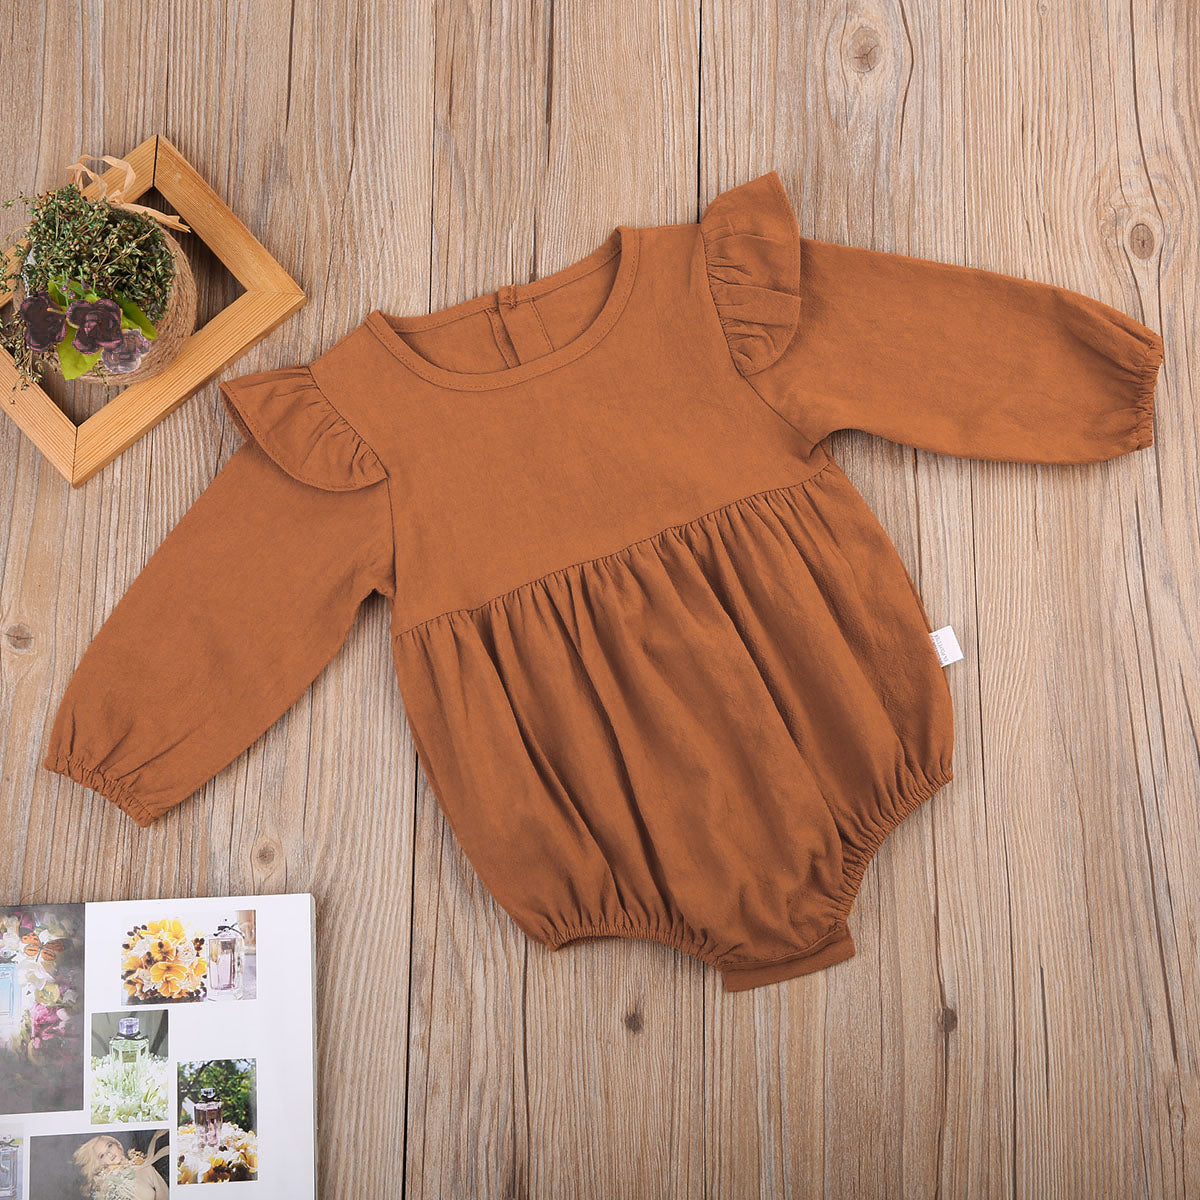 7631dec2043 Vintage Feel Baby Girls Flutter Shoulder Long Sleeved Romper – Stork ...